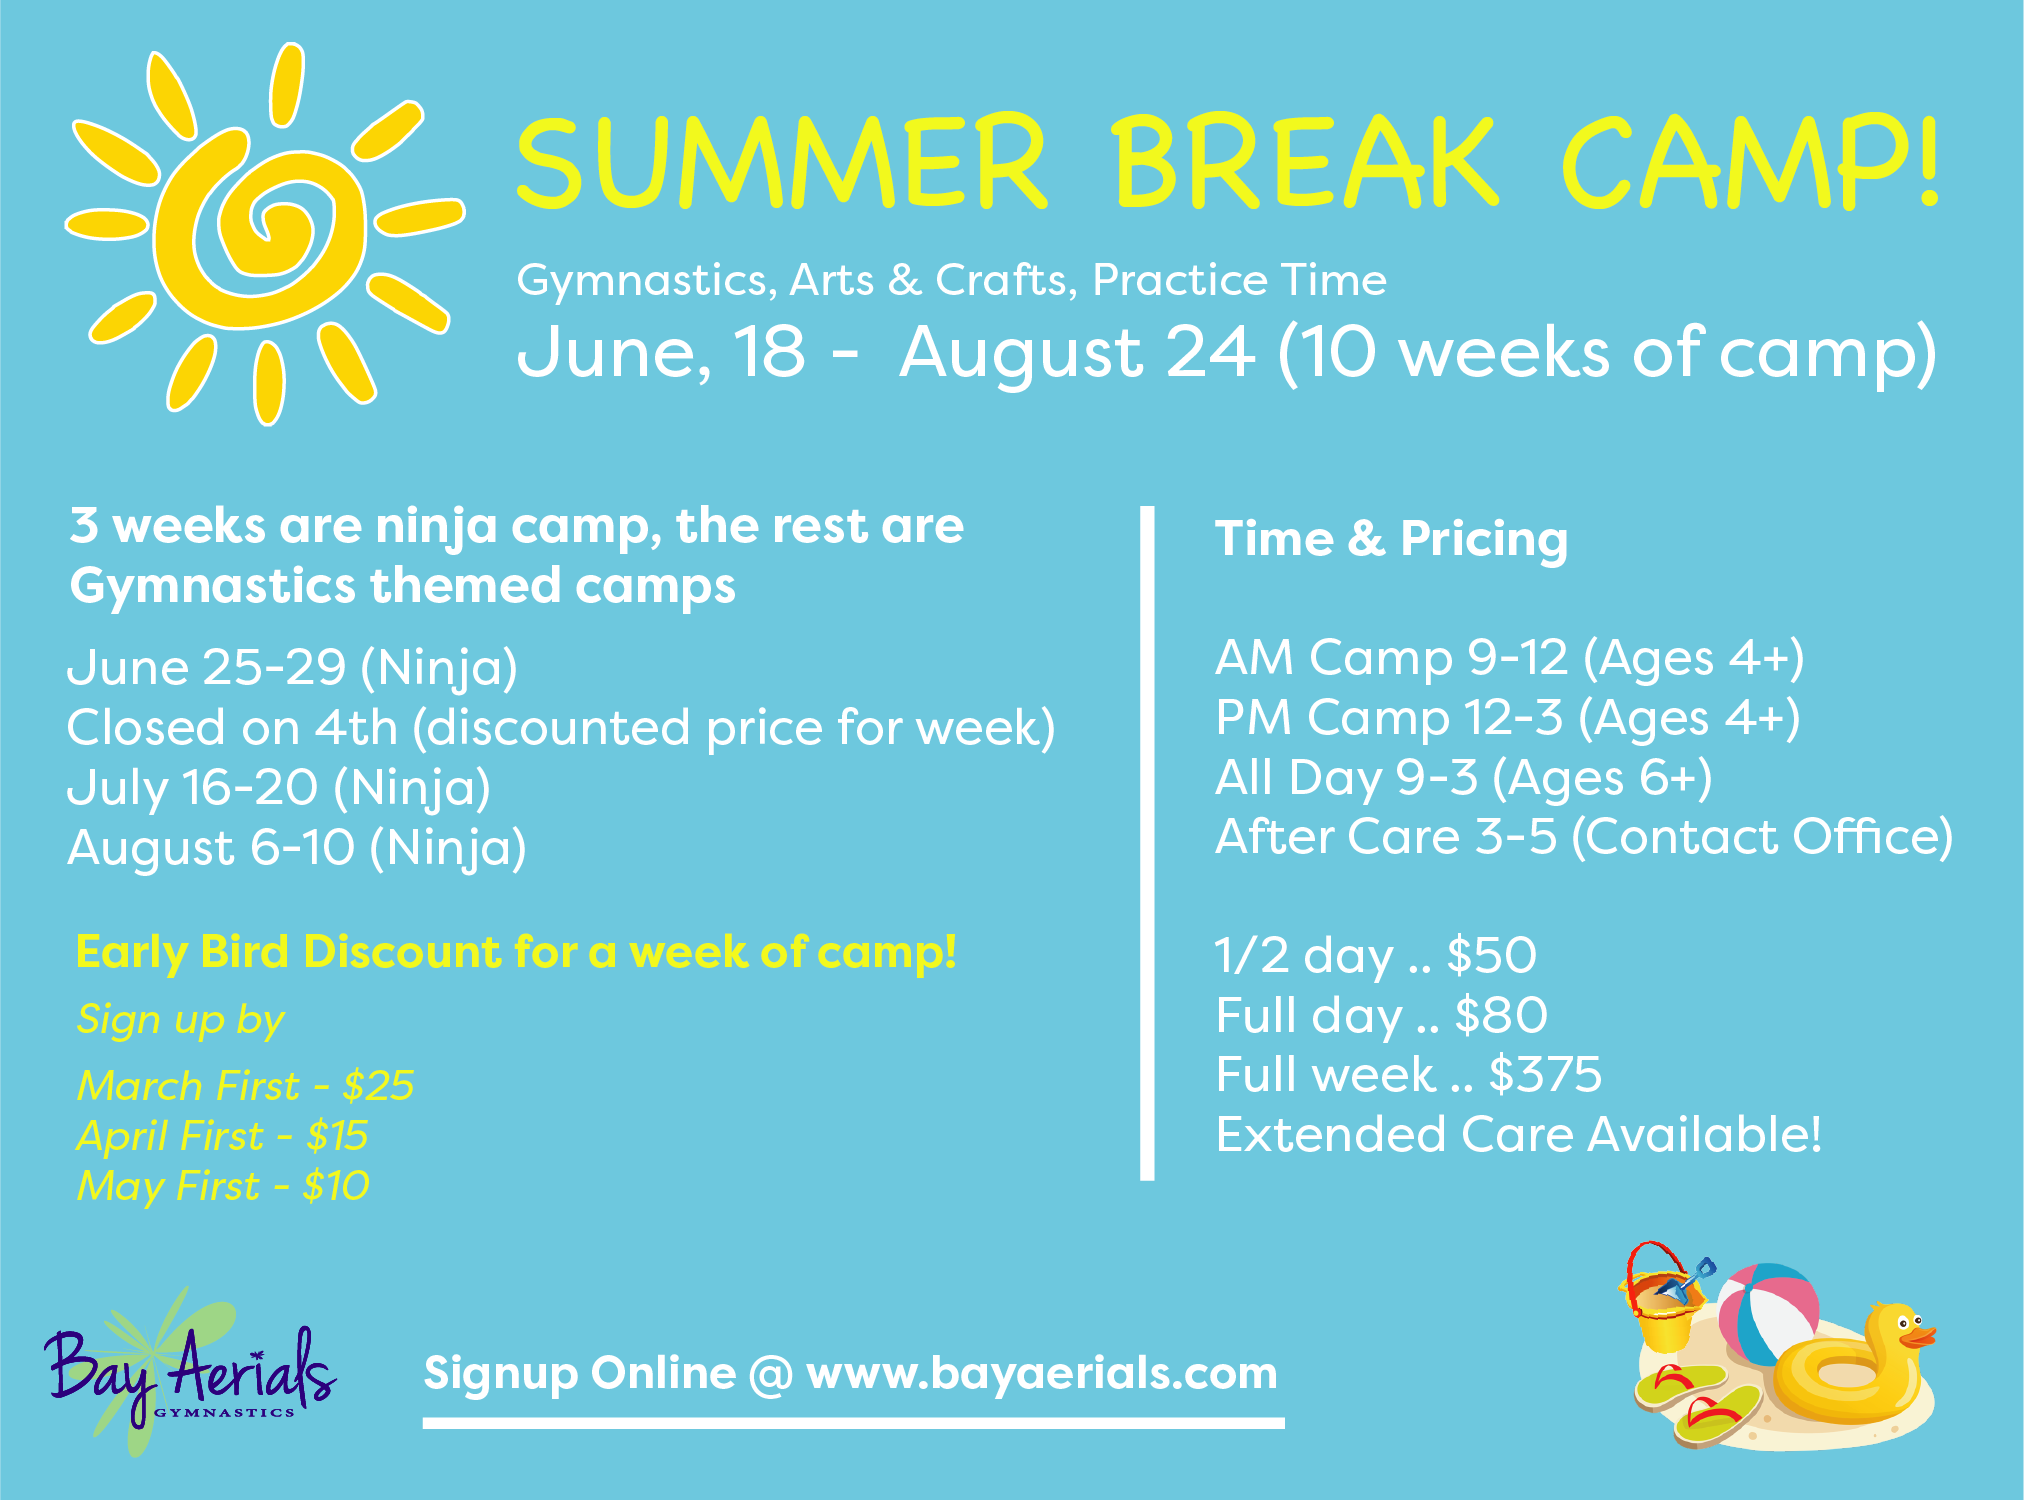 feb-pno+summercamp-02.png